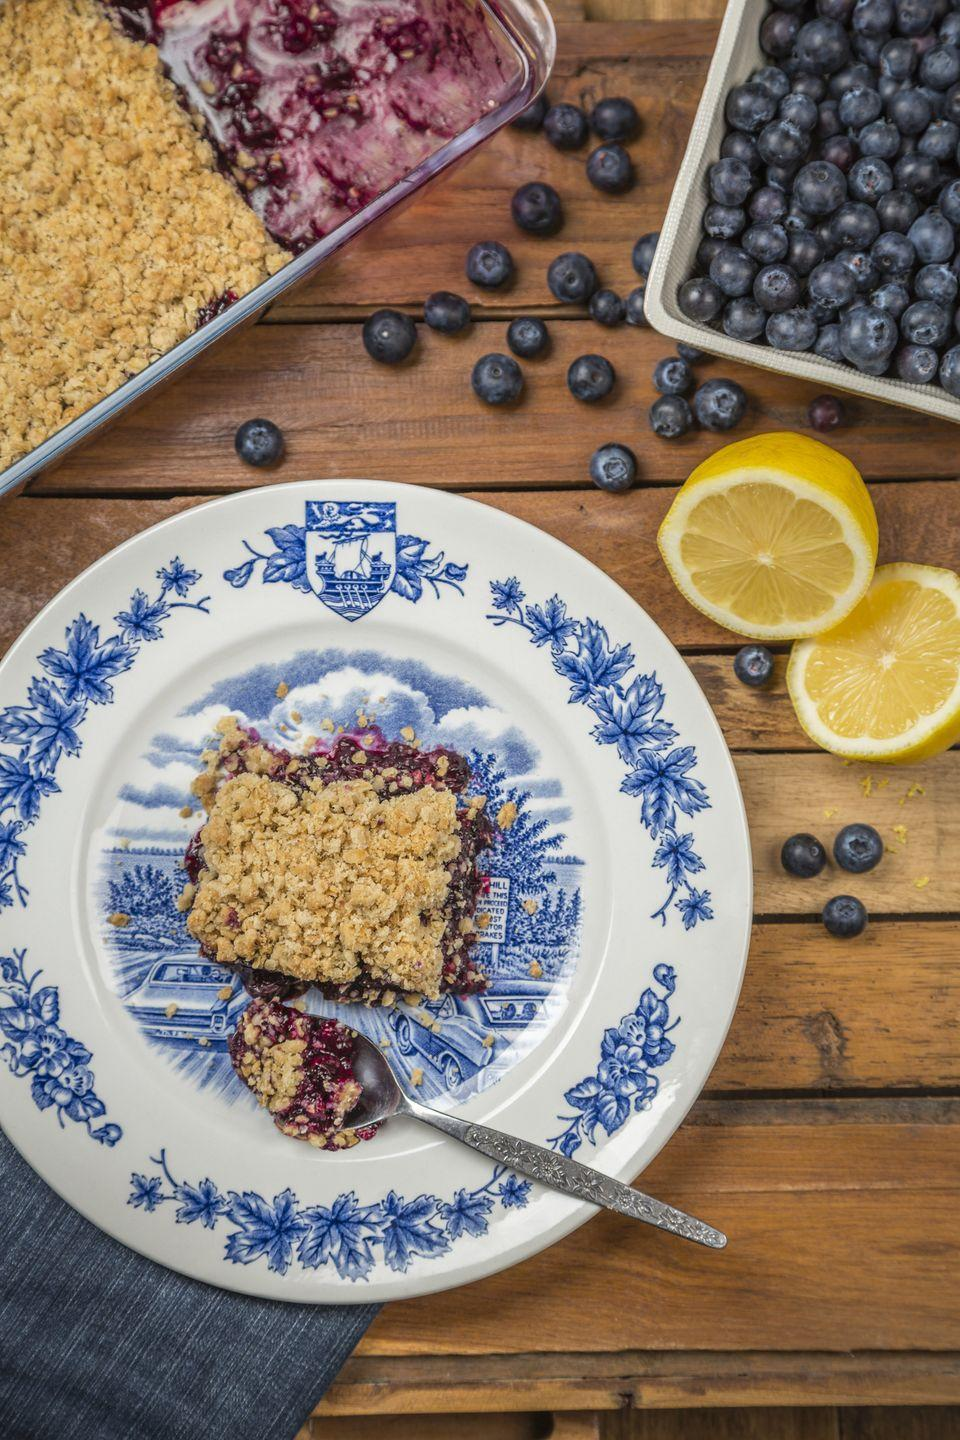 """<p>Strawberry-based cakes tend to get all the love on the 4th of July, but this blueberry crumb cake is just as tasty. Add some strawberry or raspberry ice cream on top for that red, white, and blue feel.</p><p><em><strong>Get the recipe at <a href=""""https://www.thepioneerwoman.com/food-cooking/recipes/a9900/blueberry-crumb-cake/"""" rel=""""nofollow noopener"""" target=""""_blank"""" data-ylk=""""slk:The Pioneer Woman."""" class=""""link rapid-noclick-resp"""">The Pioneer Woman.</a></strong></em></p>"""